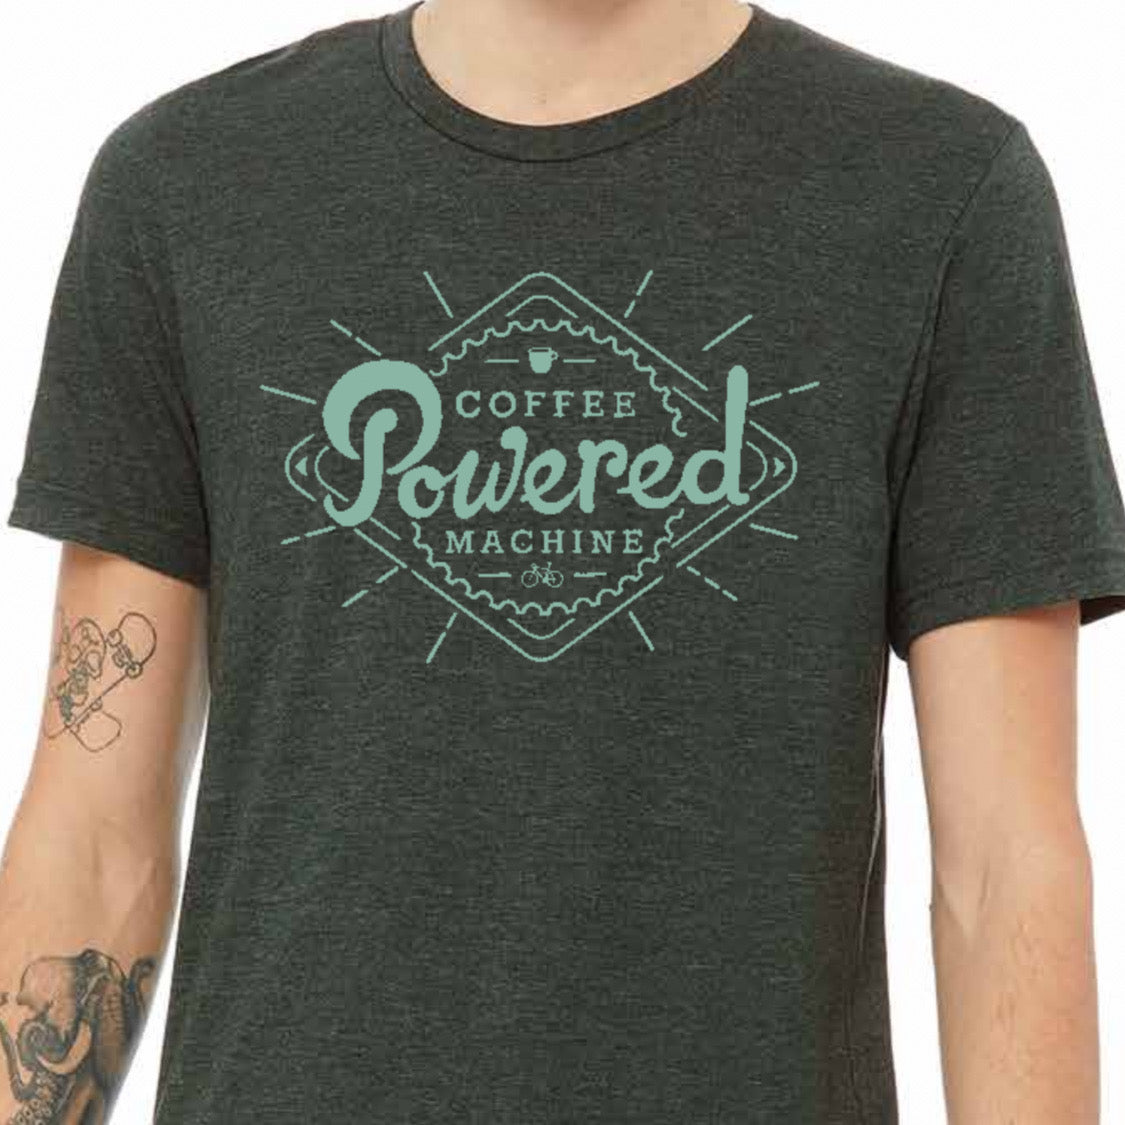 Coffee Powered Machine T-shirt